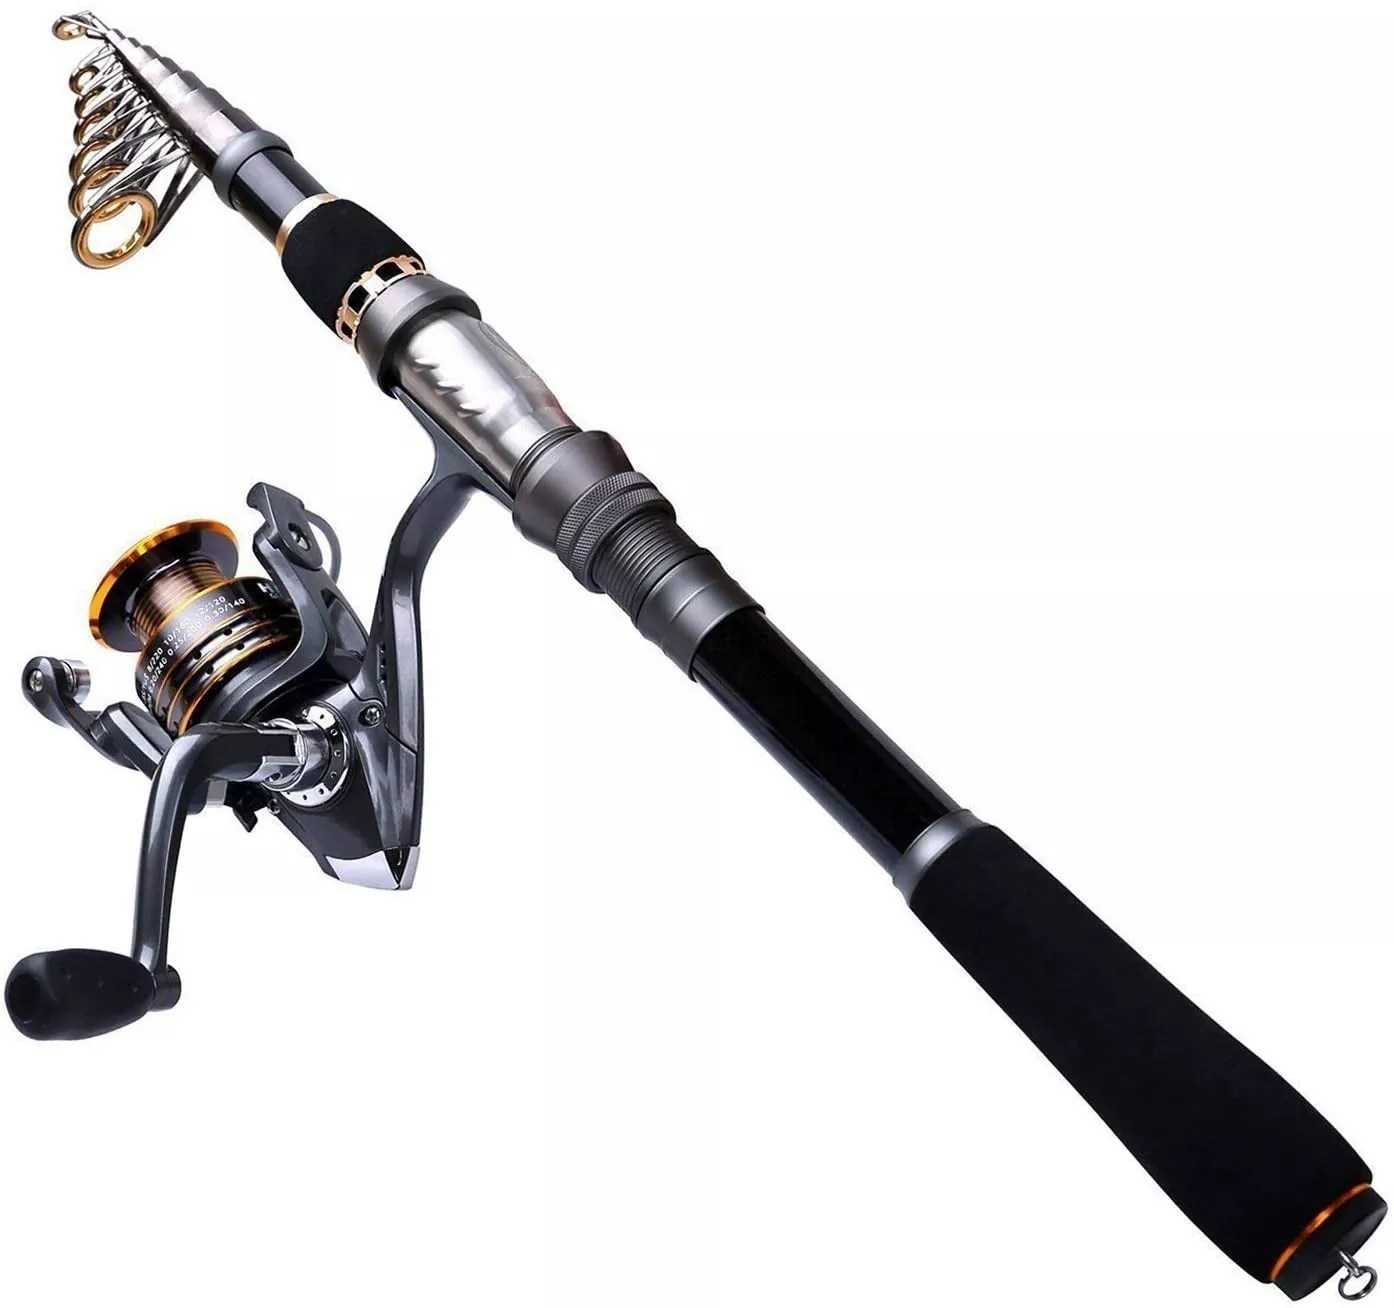 PLUSINNO Telescopic Fishing Rod and Reel Combos Full Kit, Carbon Fiber Fishing Pole